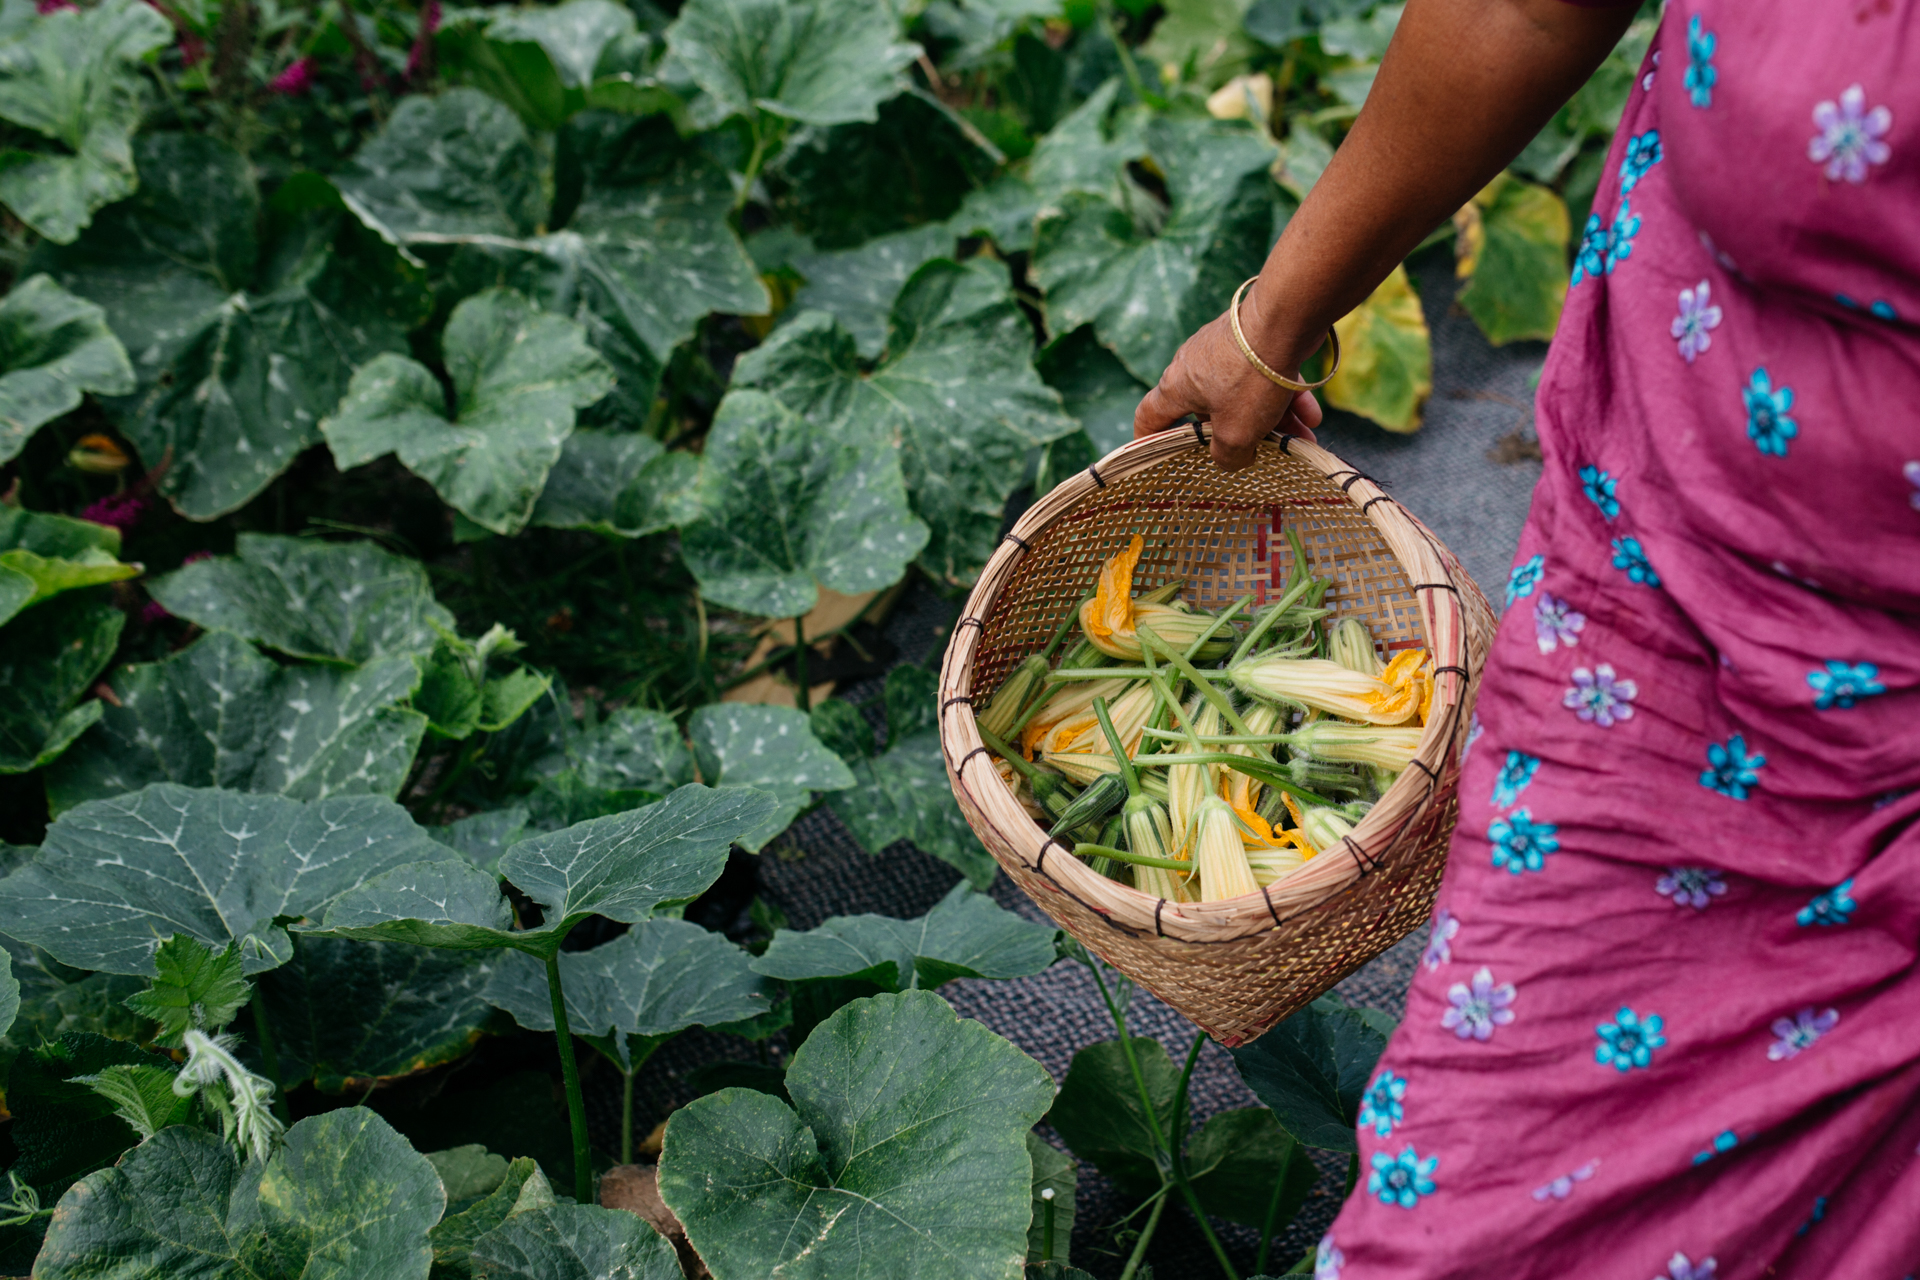 Rajna collects squash blossoms in a beautiful handwoven basket. She learned to weave as a young girl in Bangladesh from her grandmother.